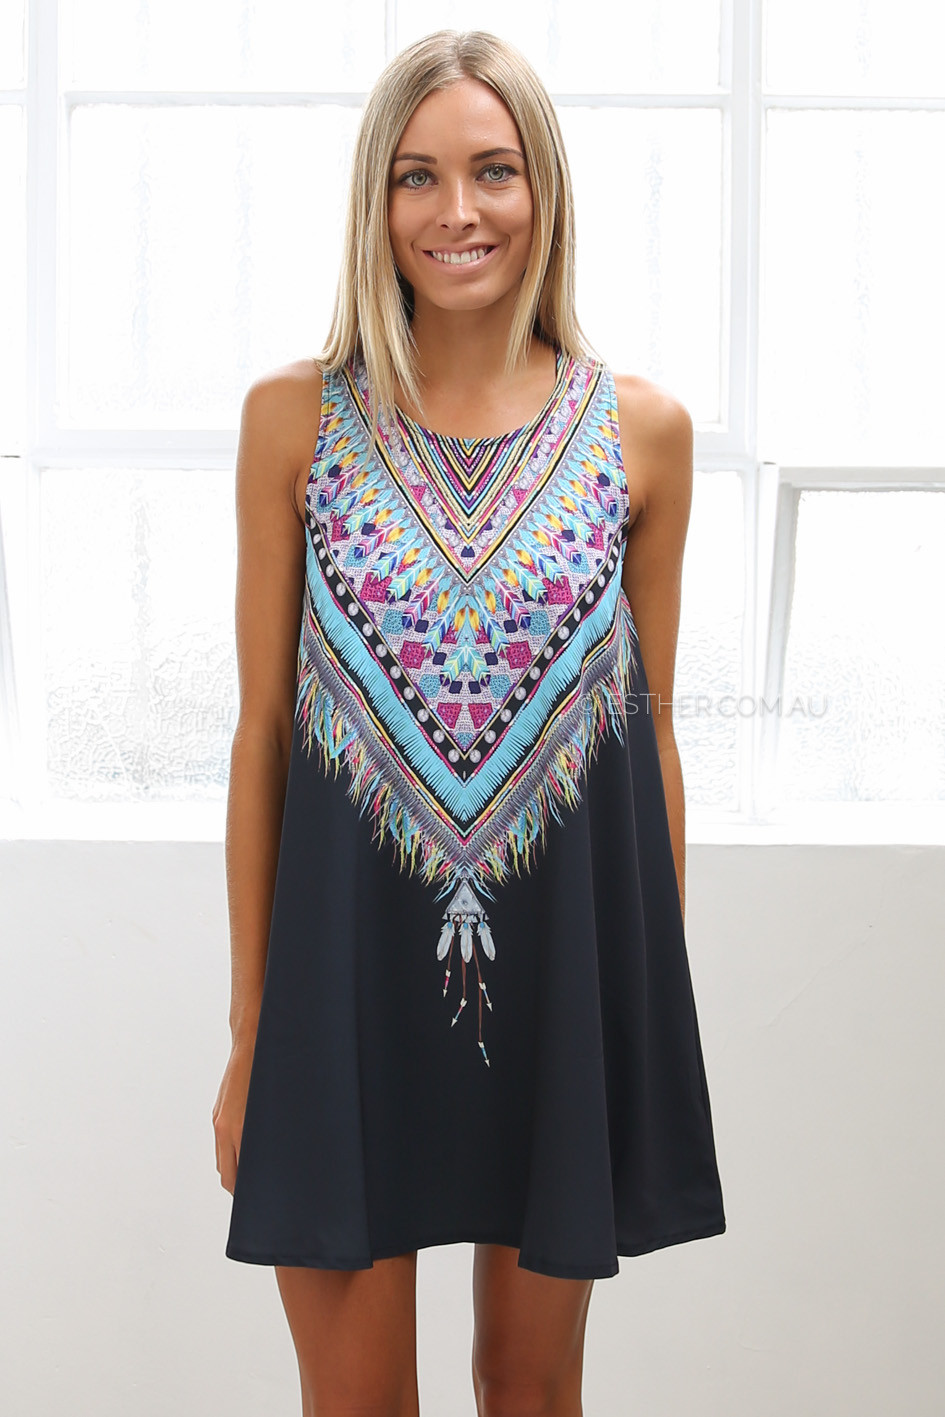 Boutique clothing online australia